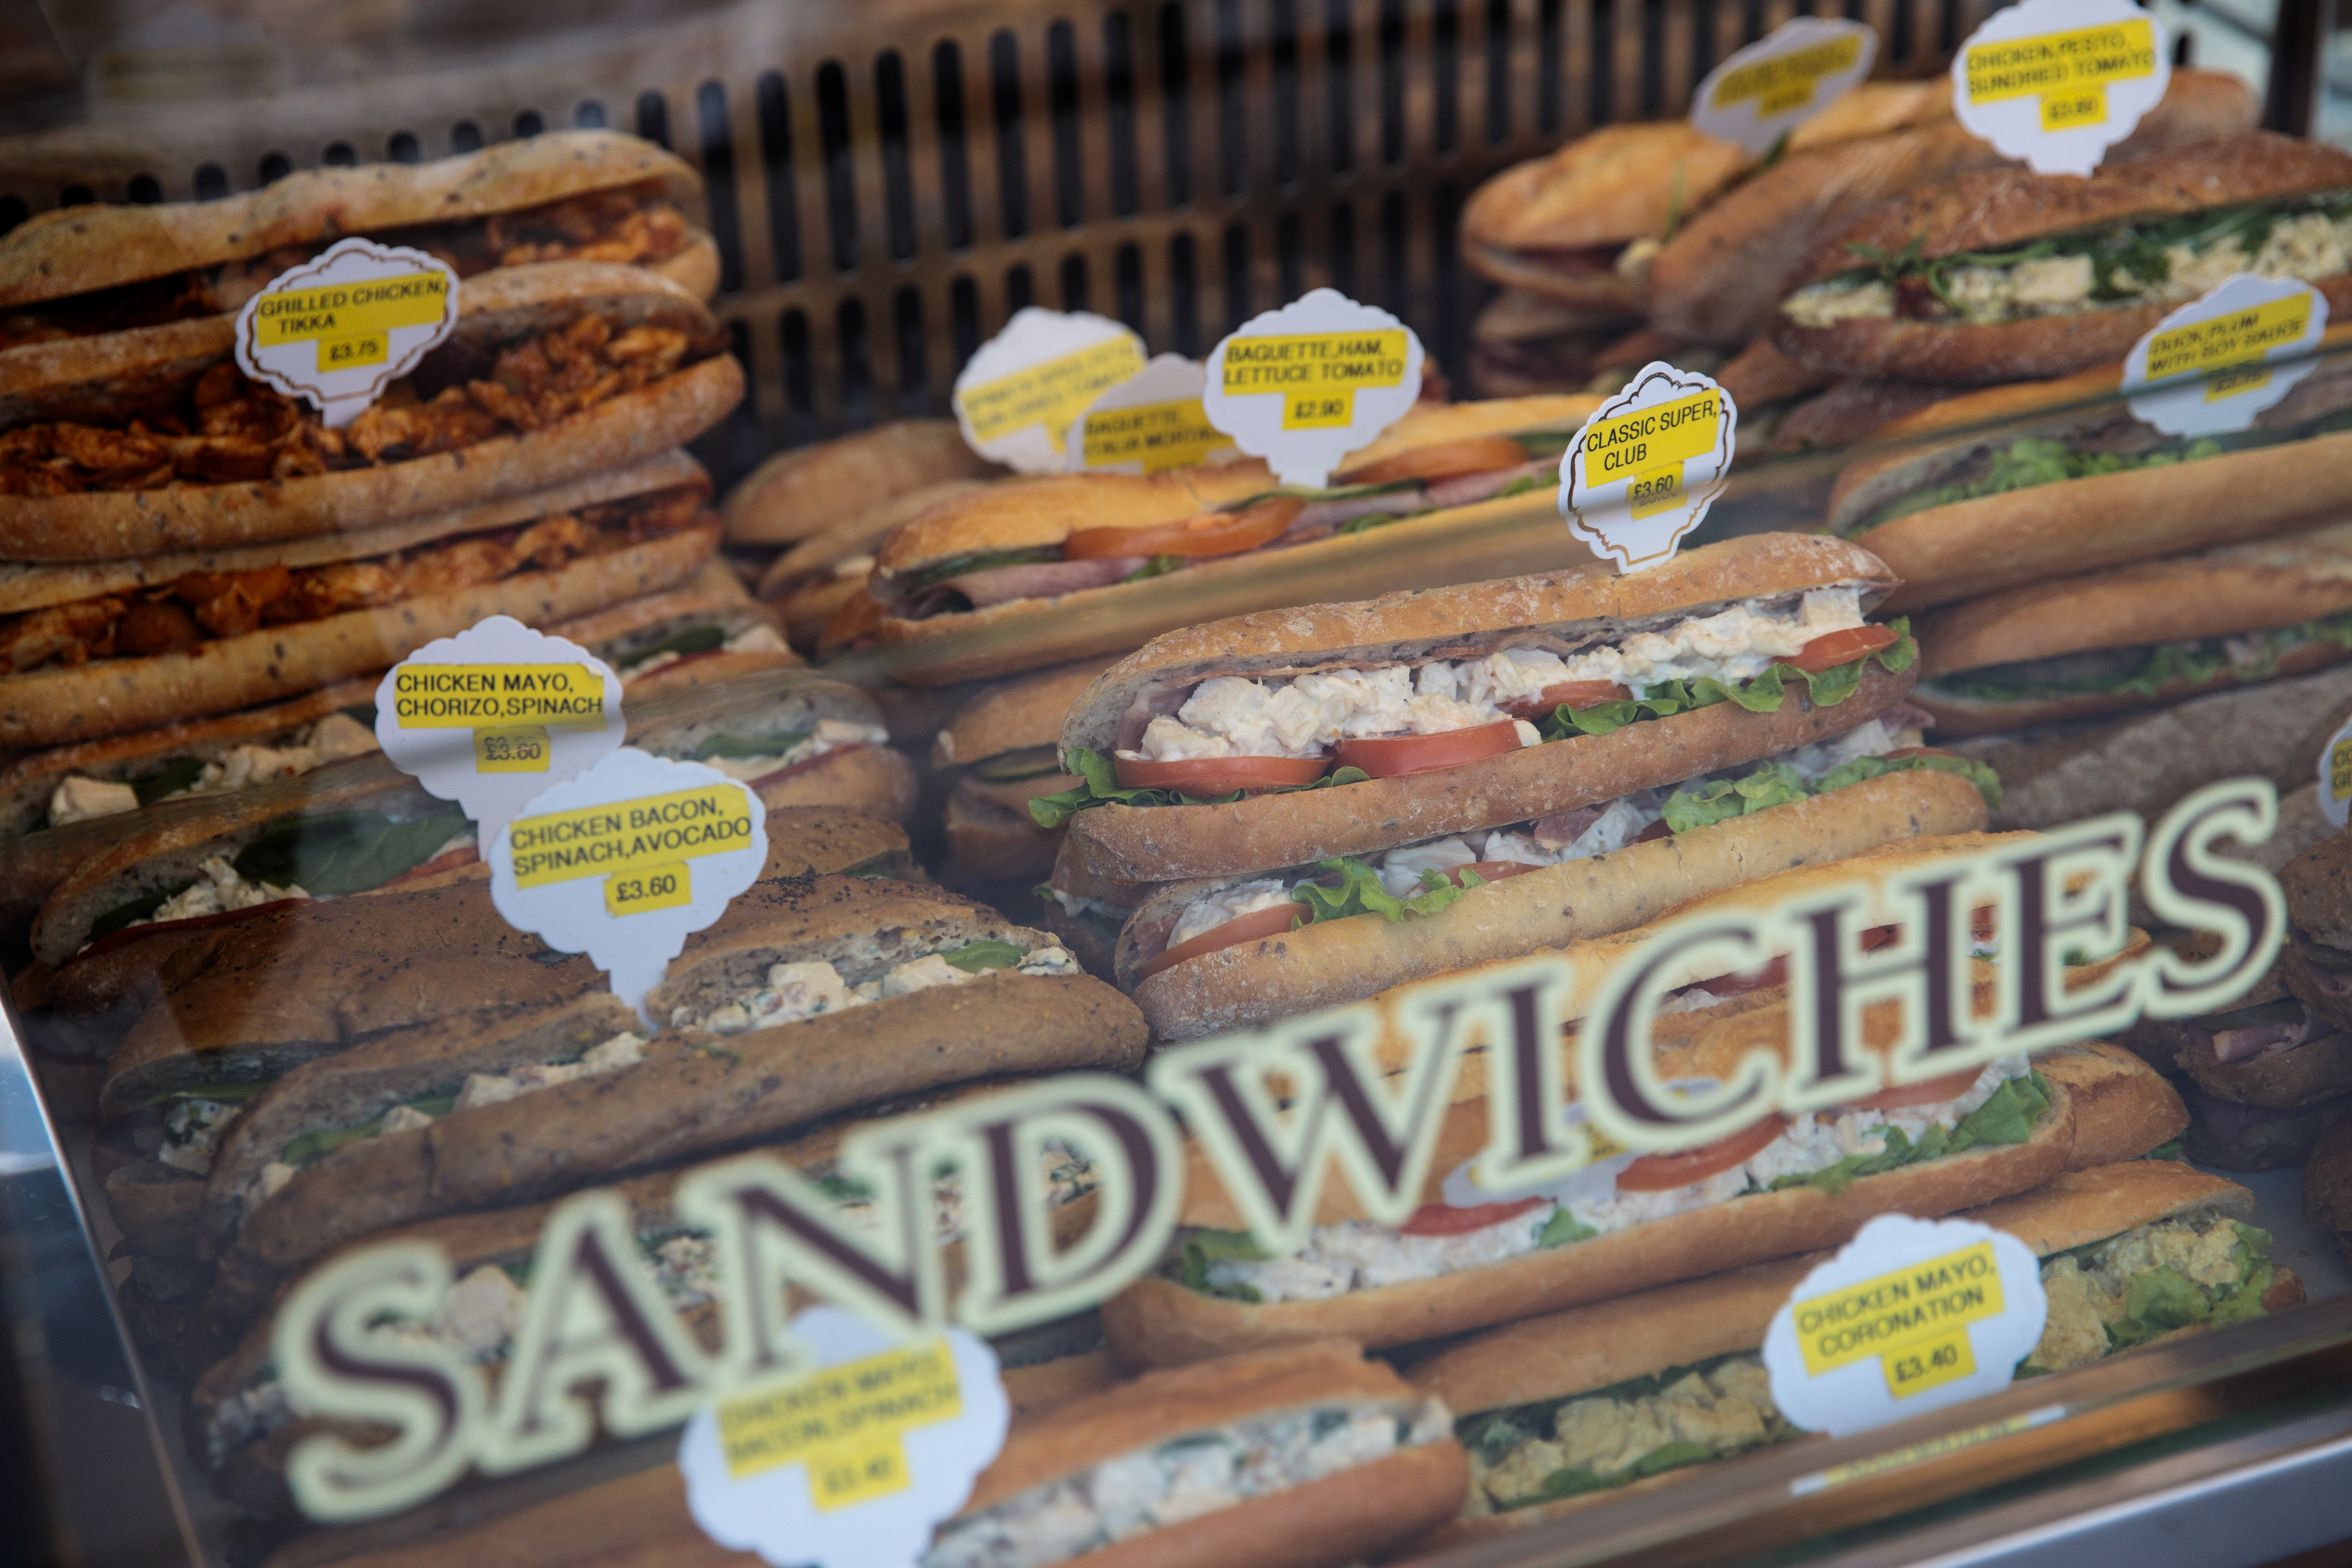 300 sandwiches article '300 sandwiches' starring  involves placing edible things between pieces of bread 300 times in exchange  once again as a result of this article,.